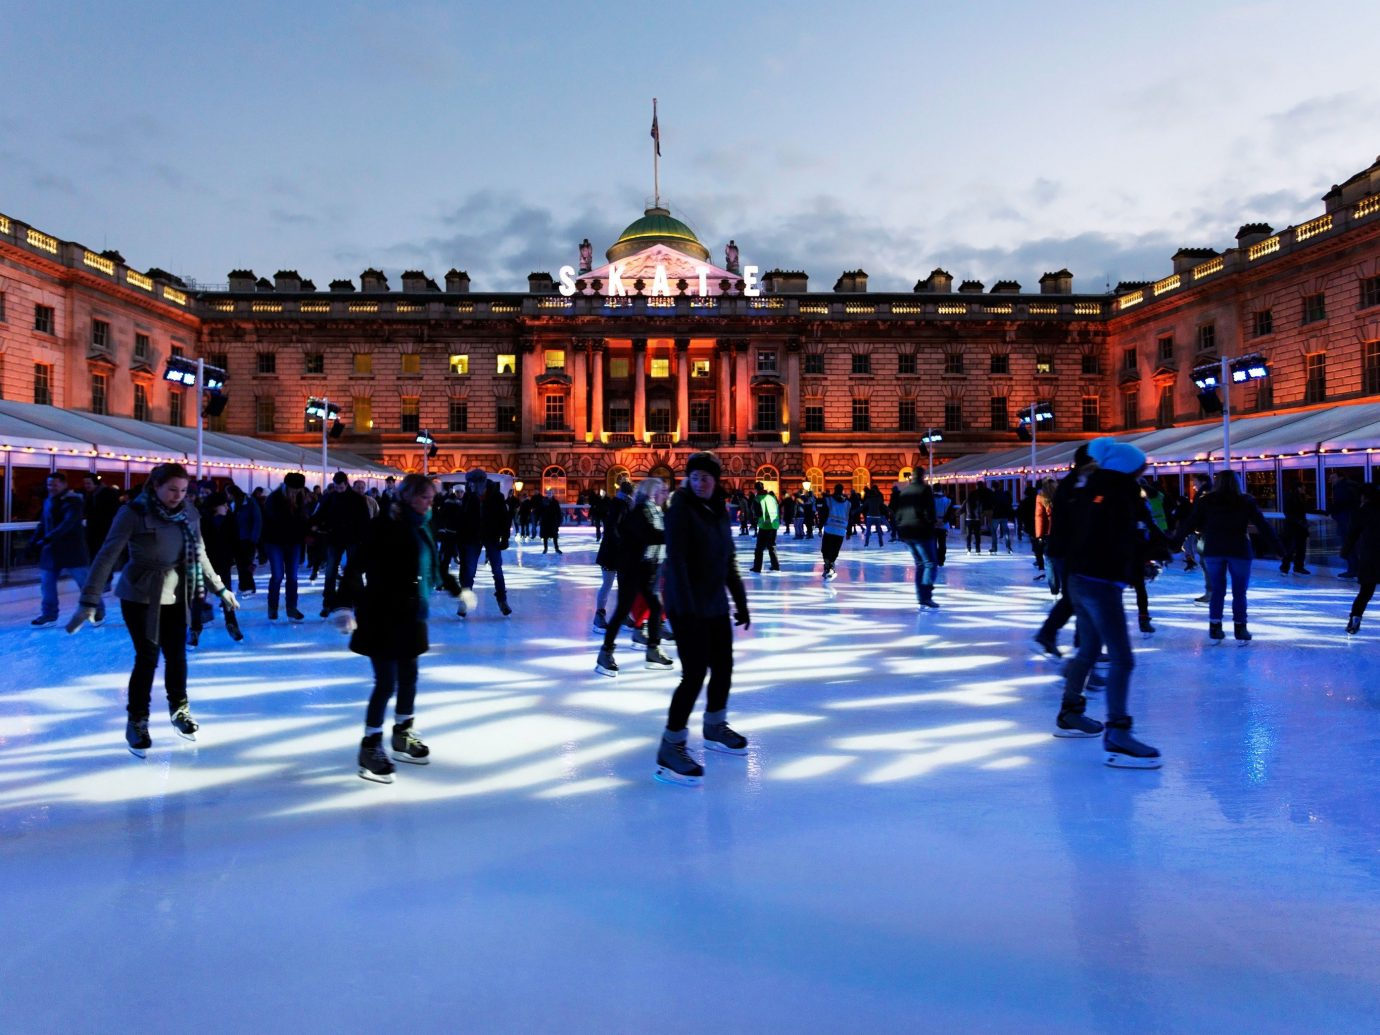 Trip Ideas sky building outdoor rink leisure ice rink plaza Ice Skating outdoor recreation skating group town square palace Resort square